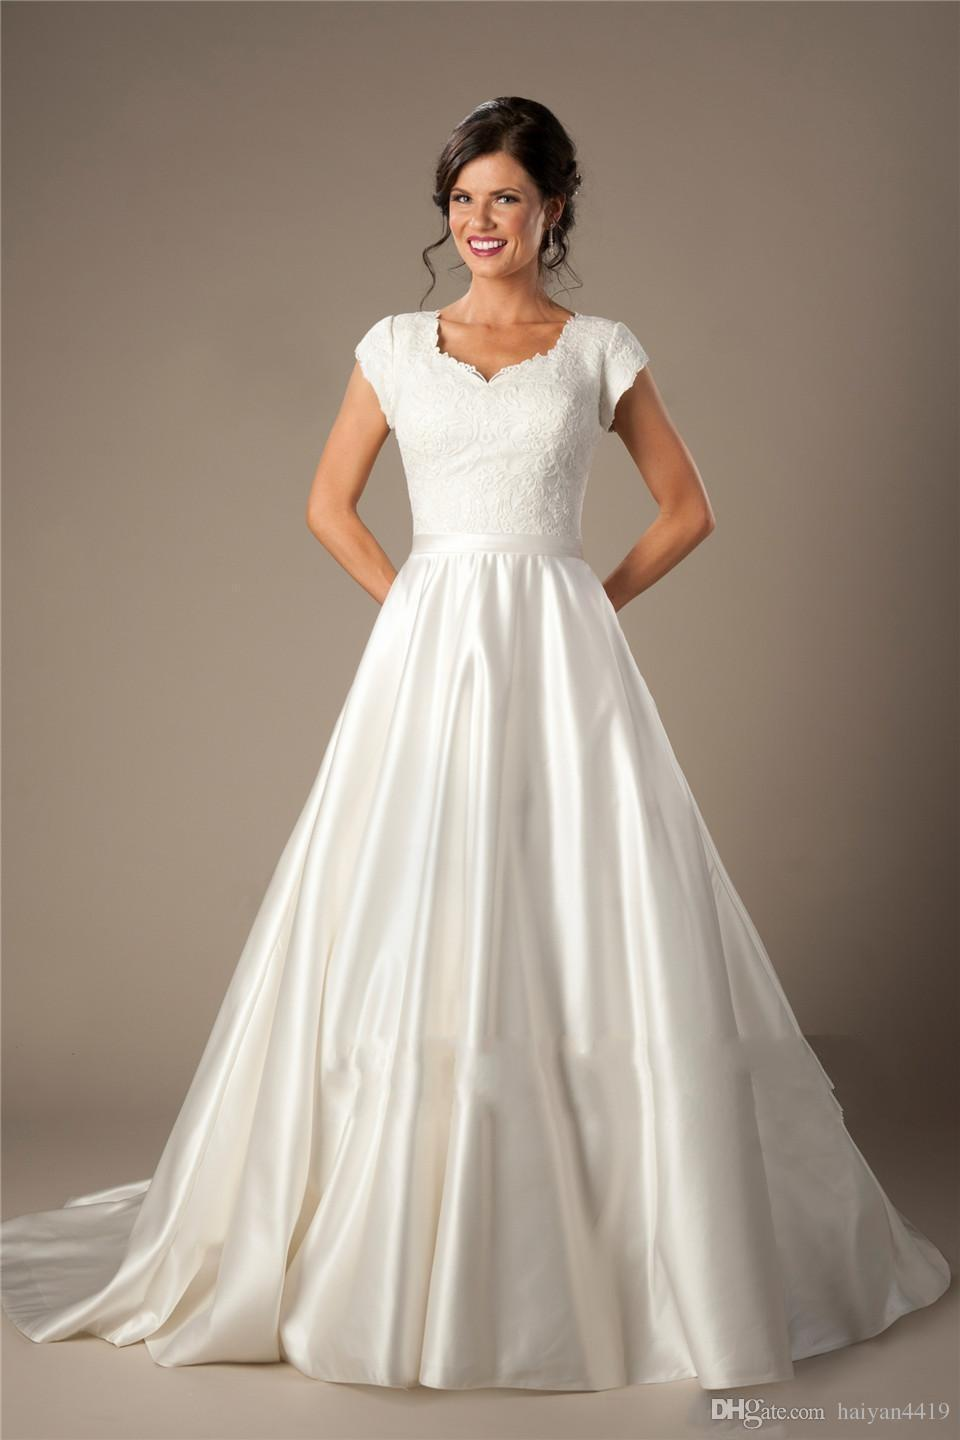 Vintage Modest A Line Wedding Dresses 2018 Sweetheart Cap Sleeves Lace Appliques Satin Buttons Back Sweep Train Simple Bridal Gowns Vestidos